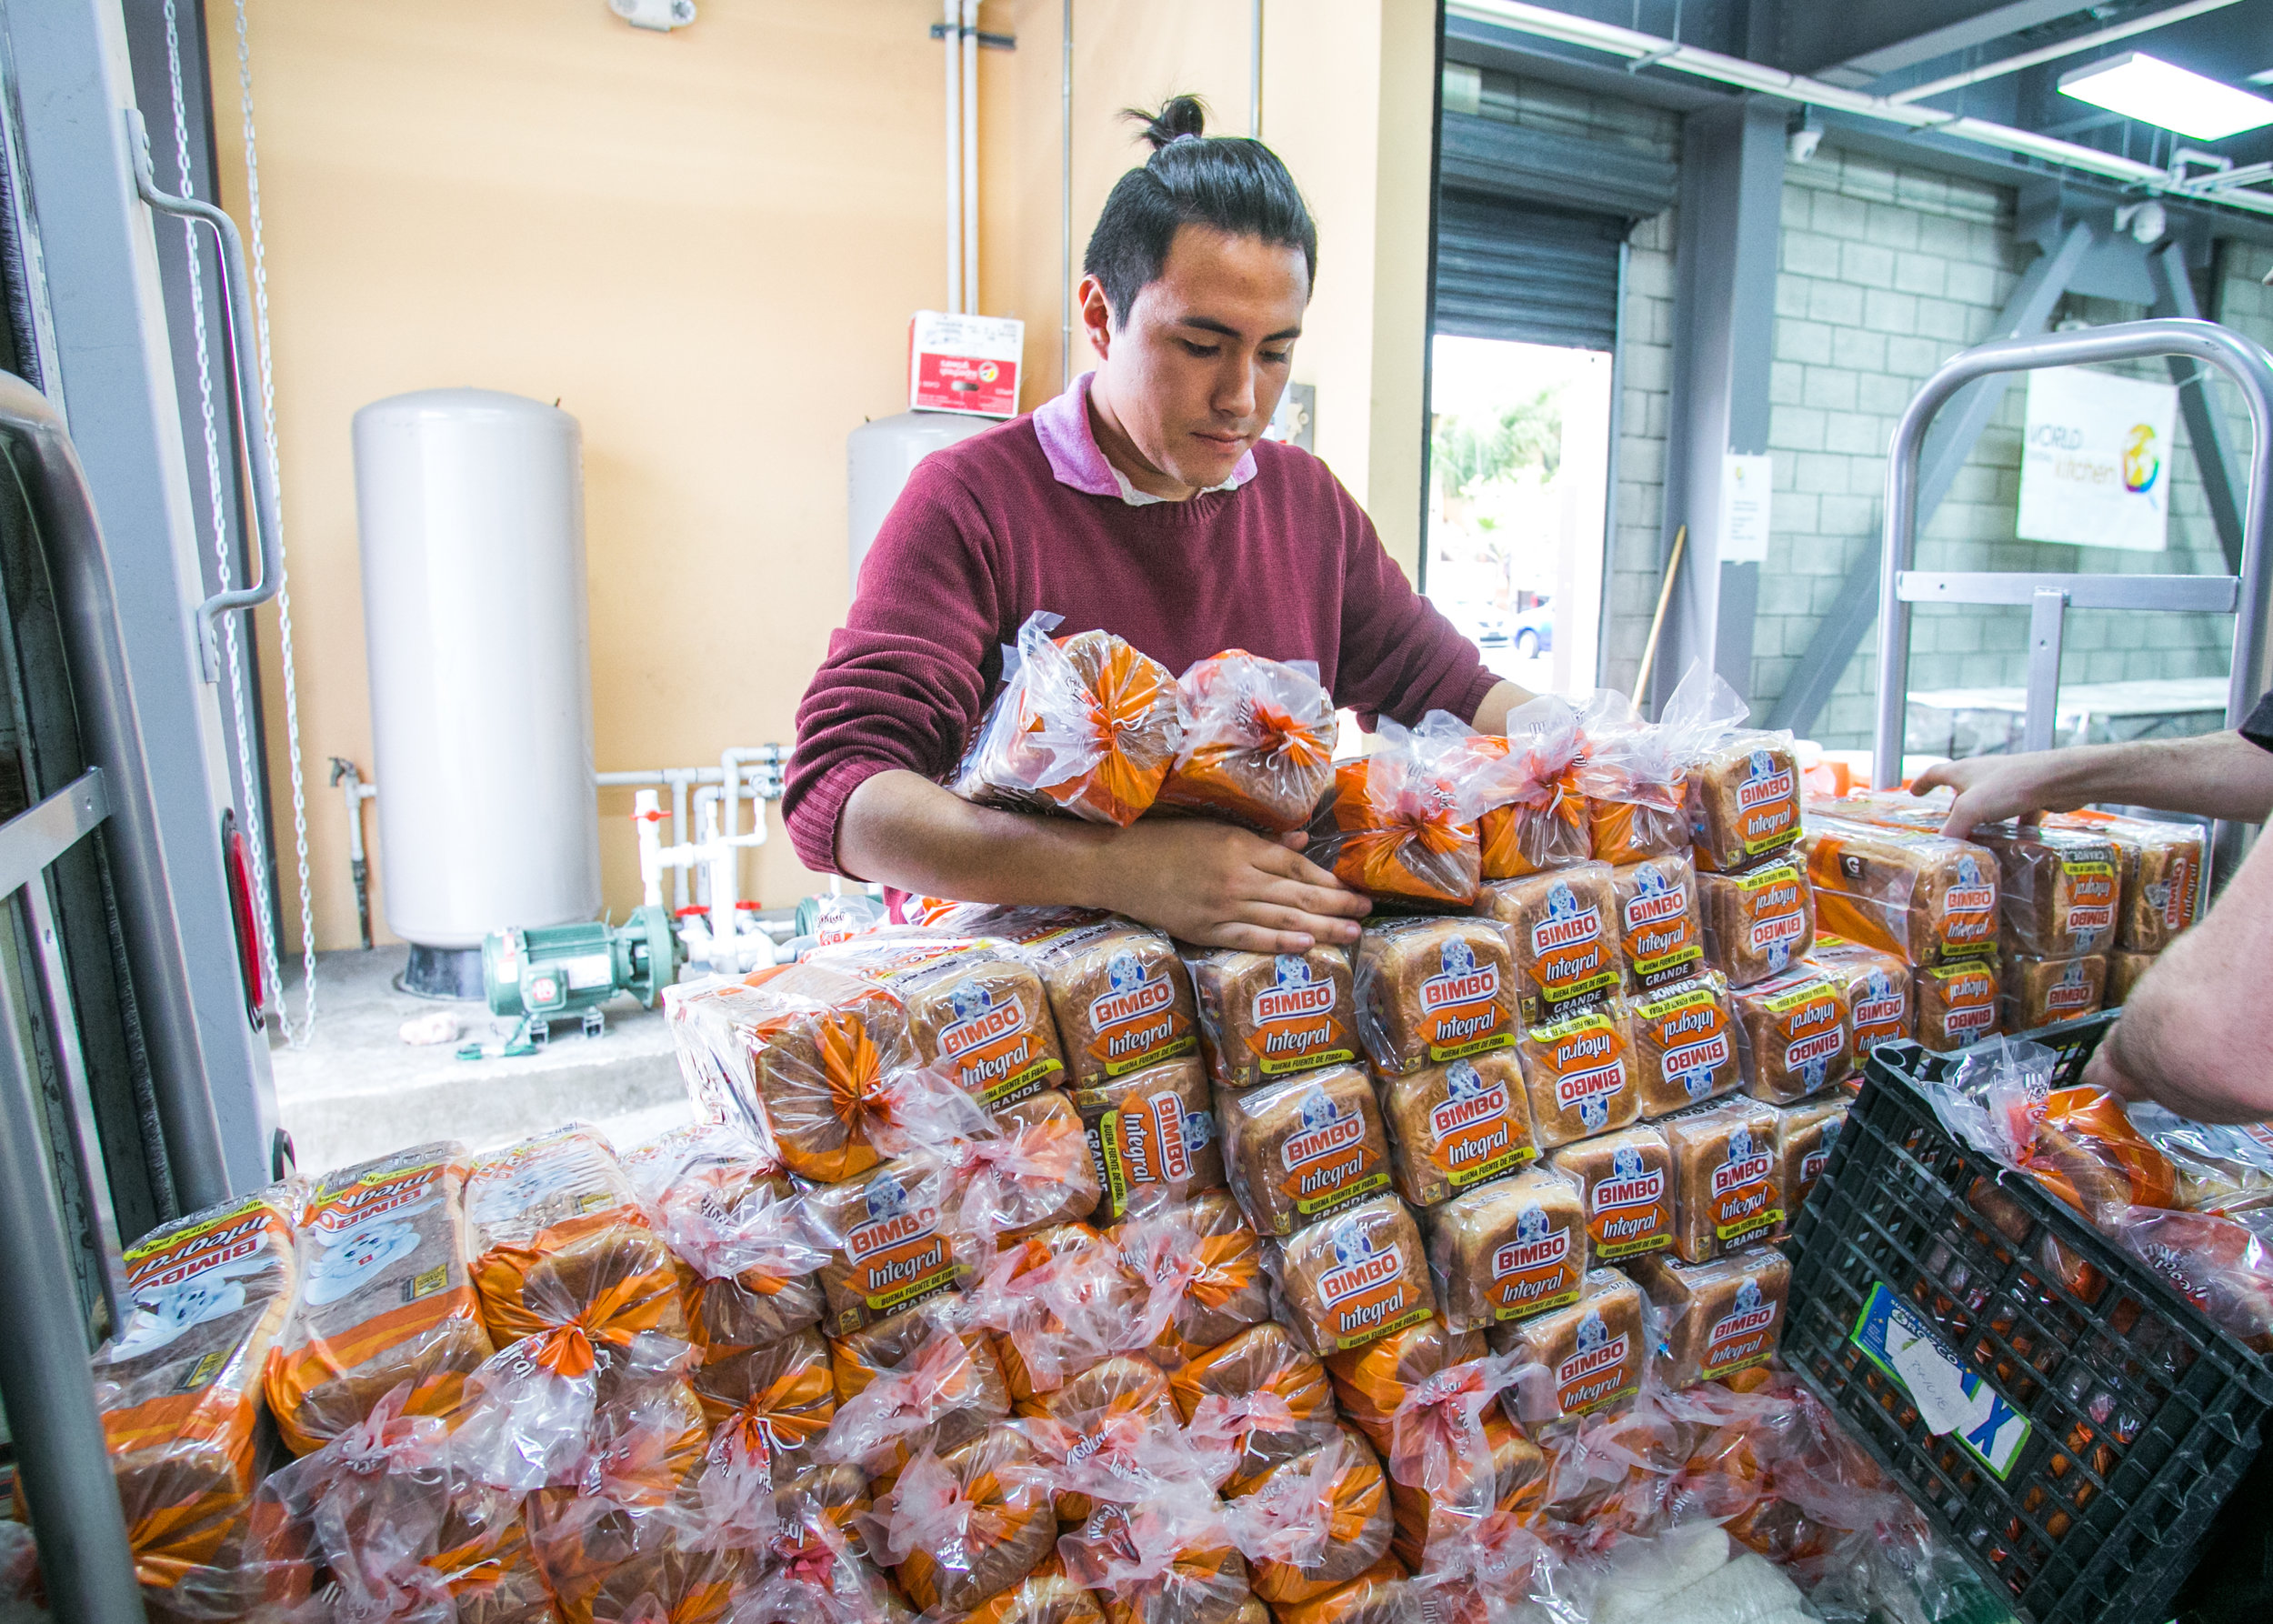 World Central Kitchen volunteer, Ocar Montana, 22, of Tijuana, unloads loafs of bread from a box truck at the WCK headquarters.Three meals a day are provided by local volunteers, churches, or international non-profits.